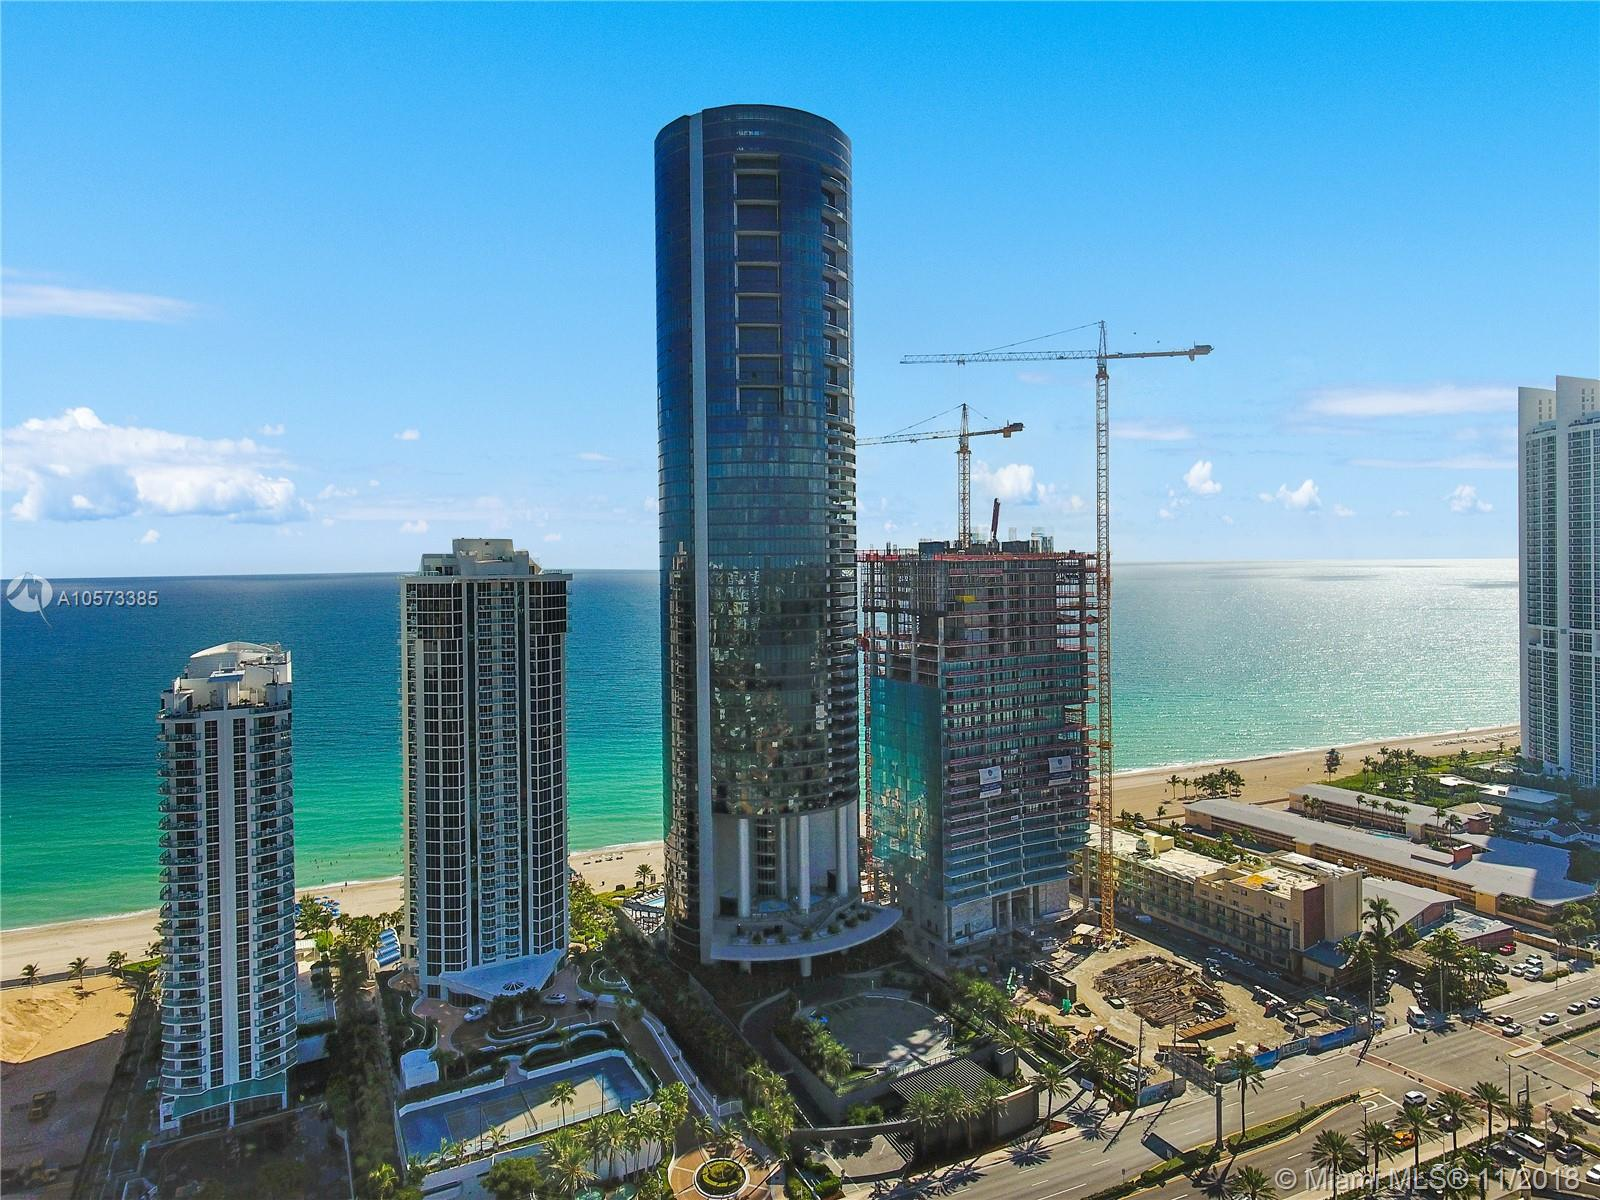 18555 Collins Ave, Unit #5101 Luxury Real Estate